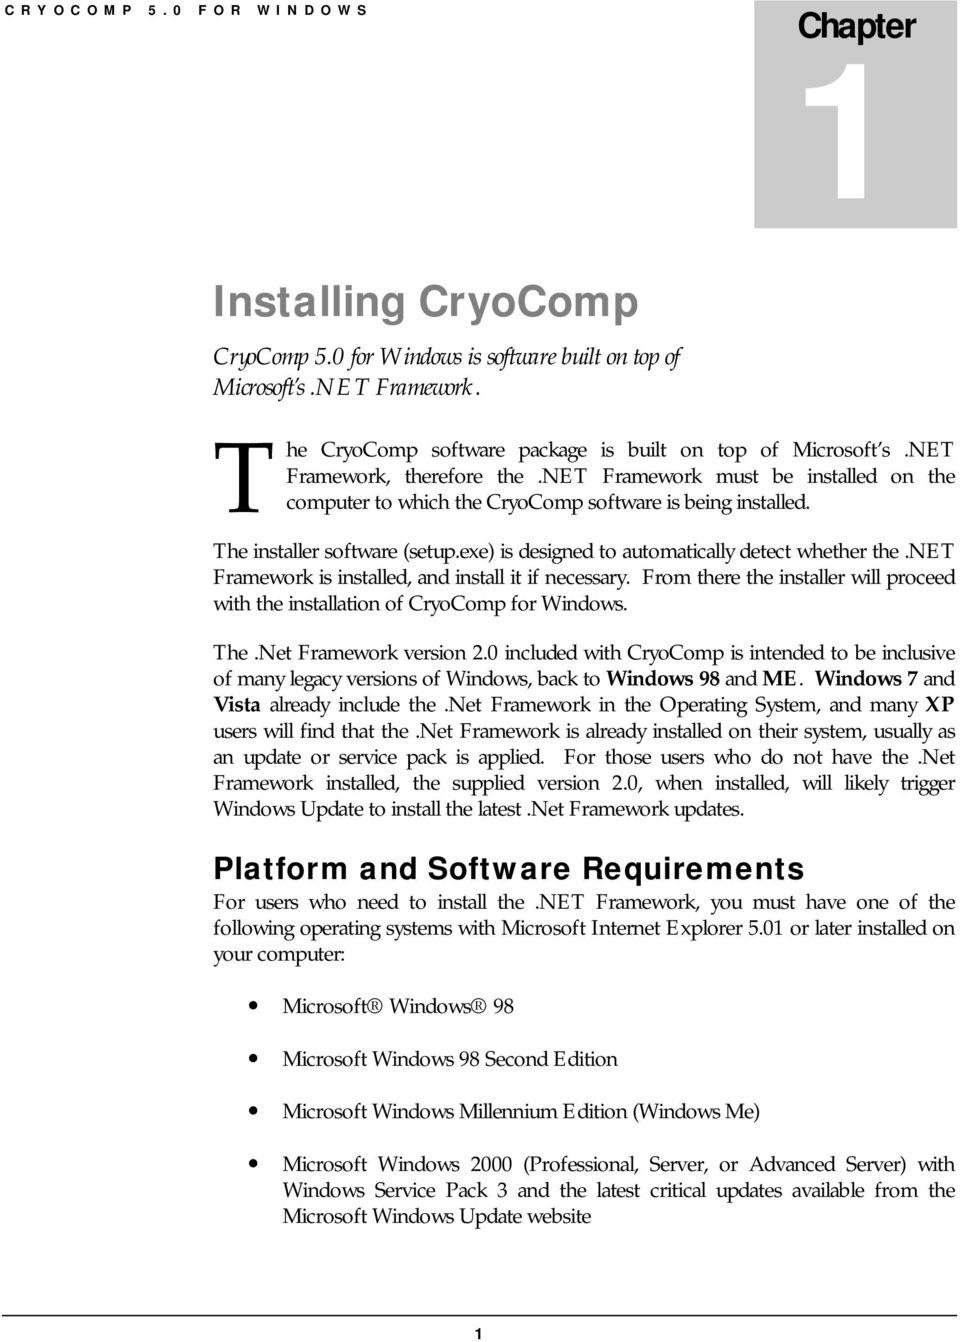 exe) is designed to automatically detect whether the.net Framework is installed, and install it if necessary. From there the installer will proceed with the installation of CryoComp for Windows. The.